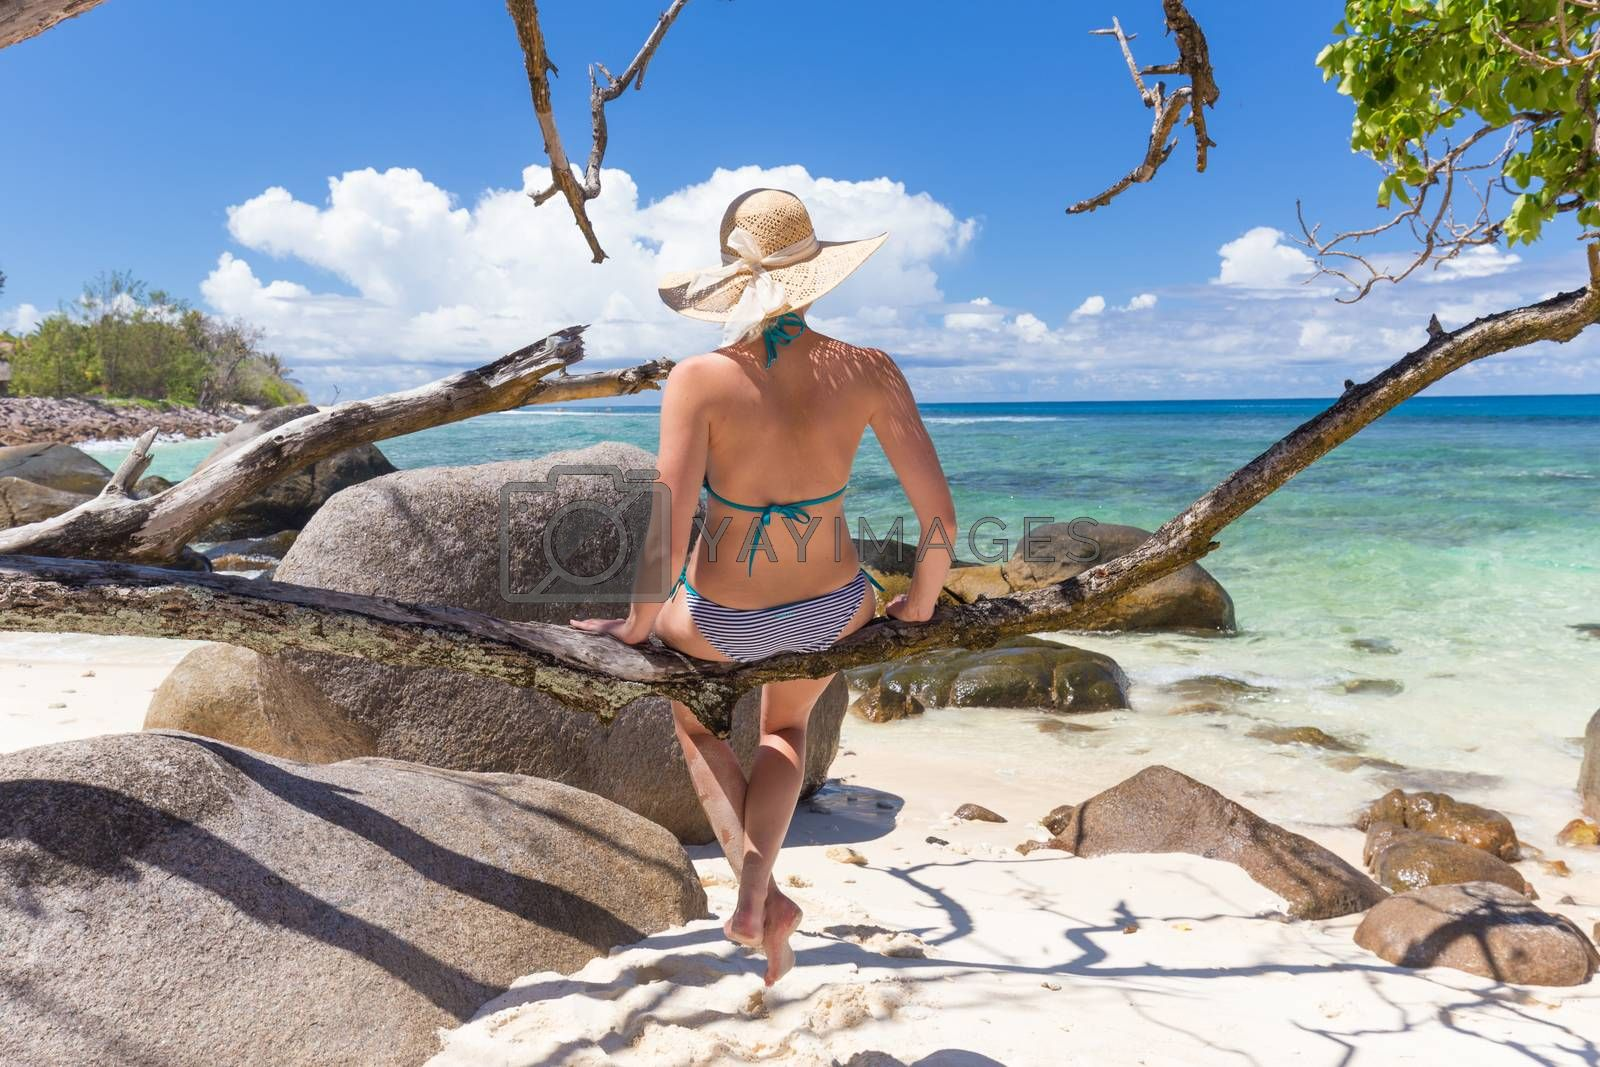 Beautiful women wearing bikini and sun hat sitting on tree branch at picture perfect tropical beach on Mahe island, Seychelles, looking at emerald sea and white clouds on horizon.